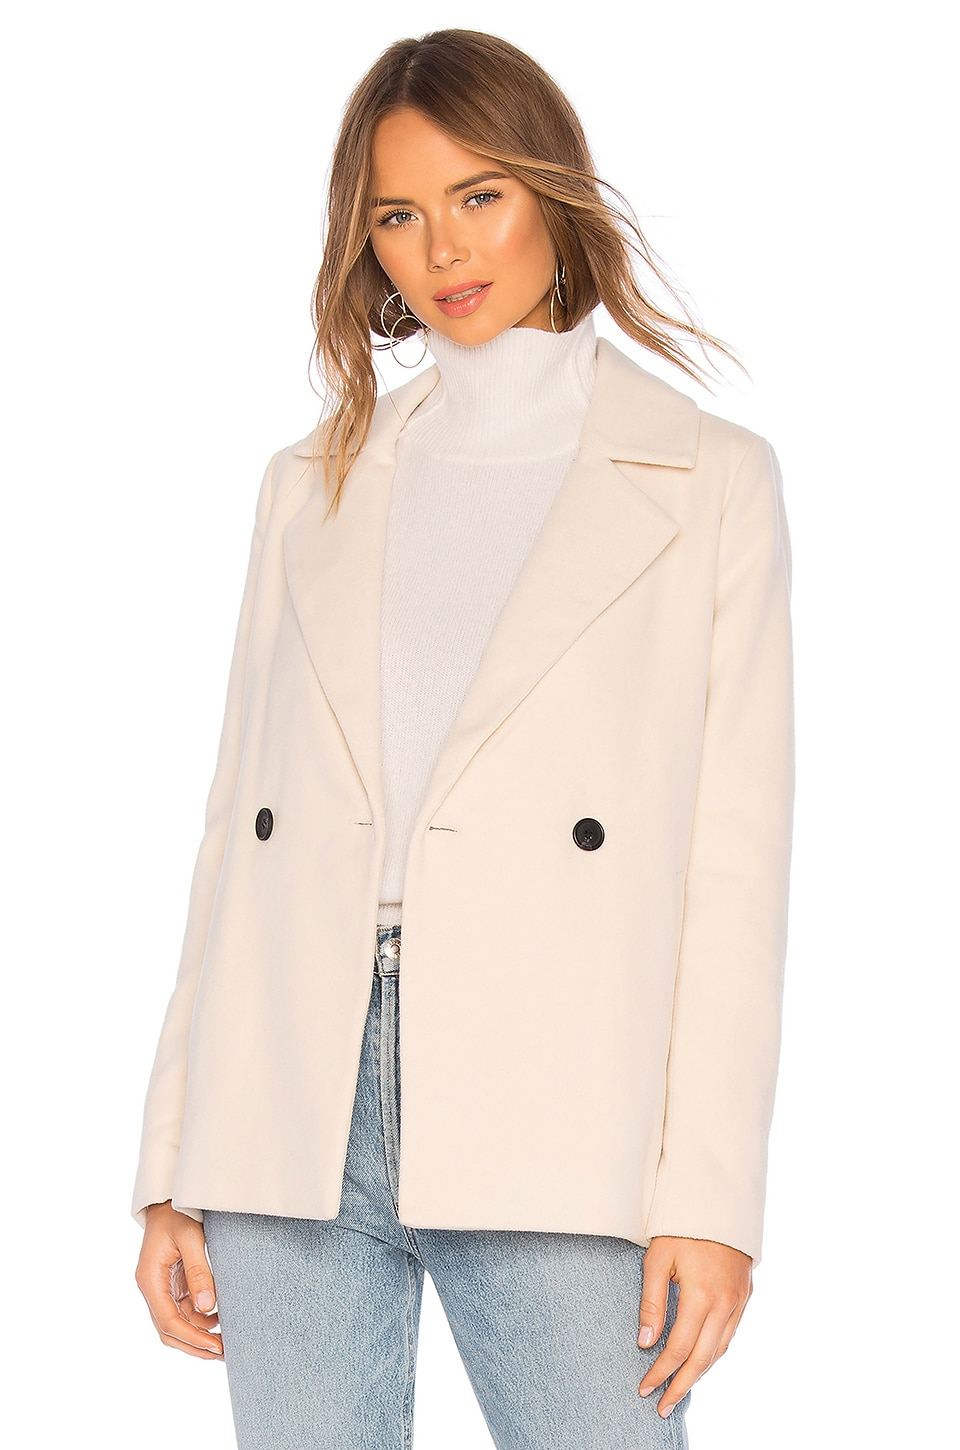 Tularosa Apollo Coat in Ivory